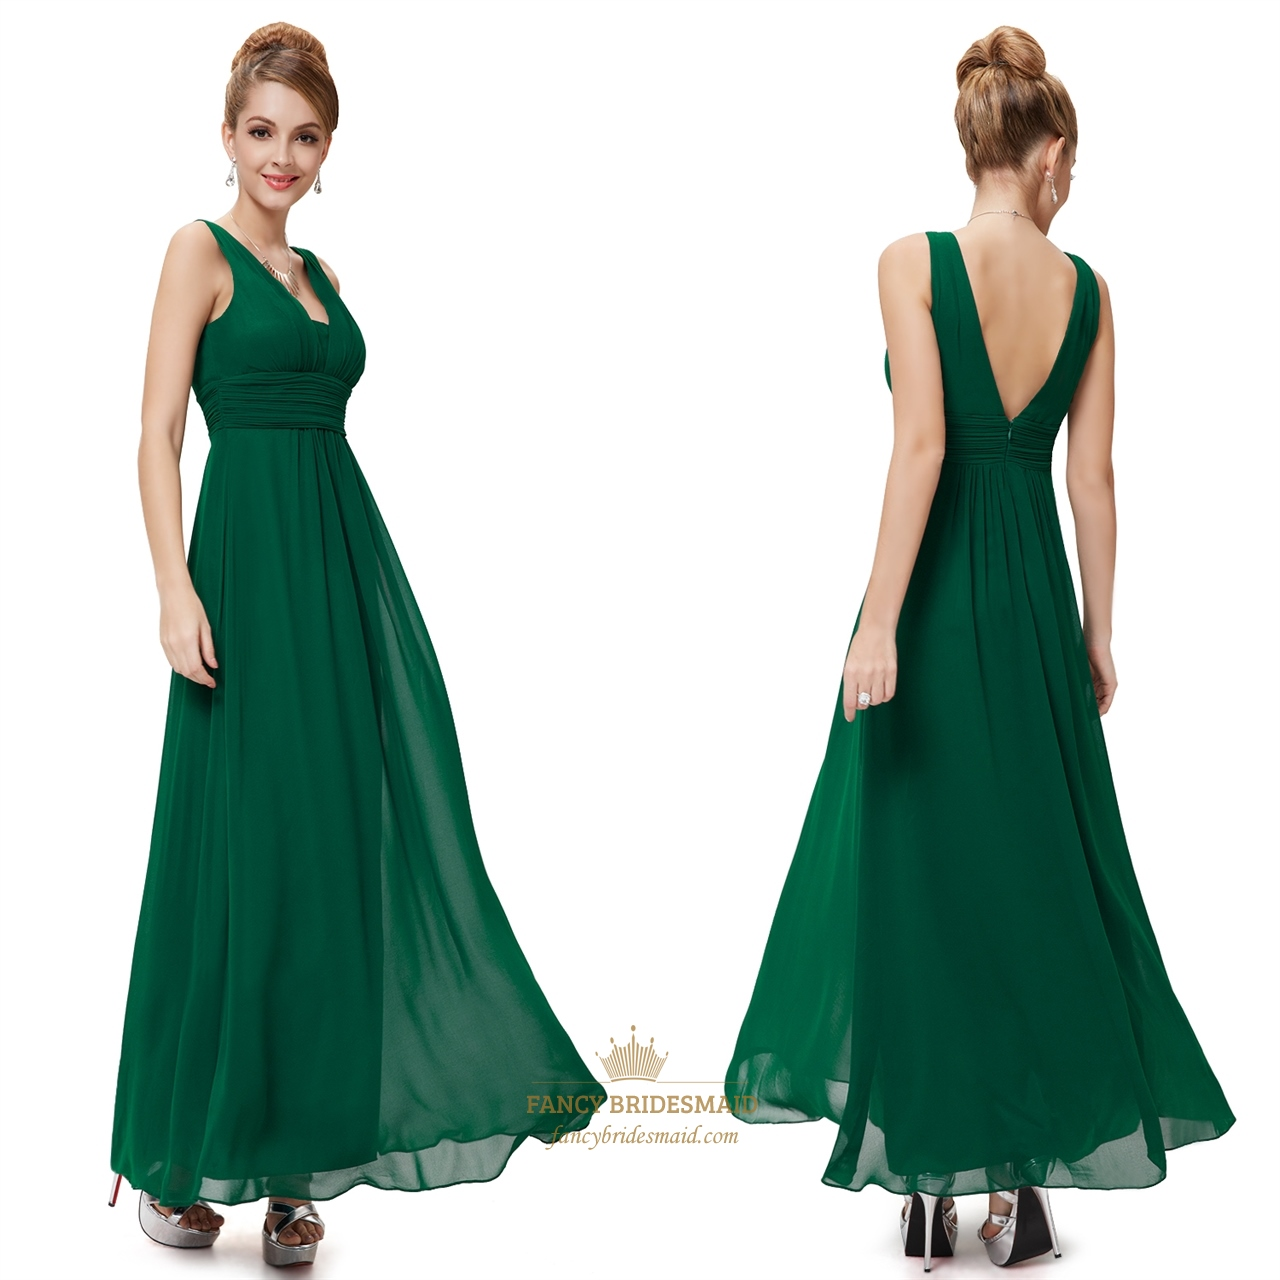 Long Emerald Green Prom Dresses Emerald Green Dress For